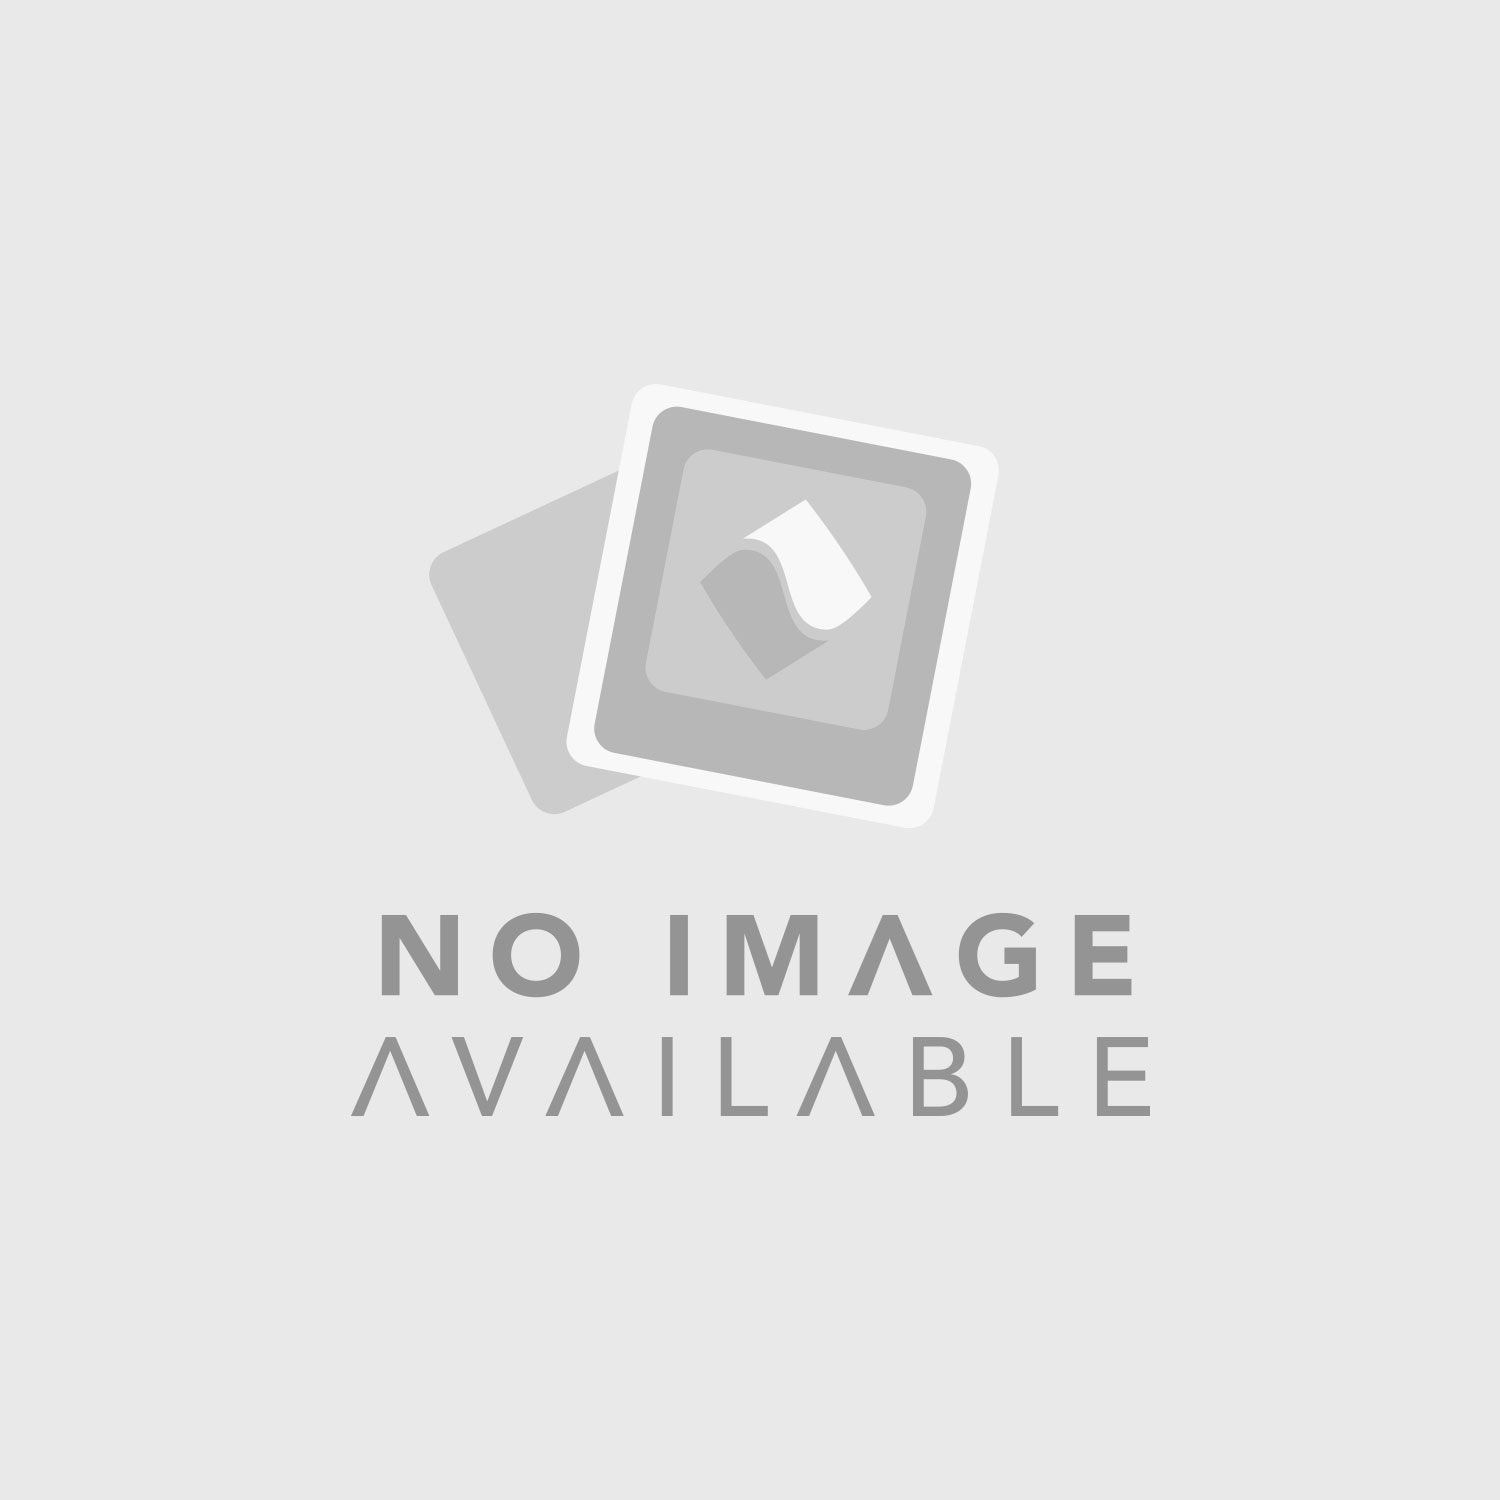 AKG CU4000 2-Slot Charging Unit